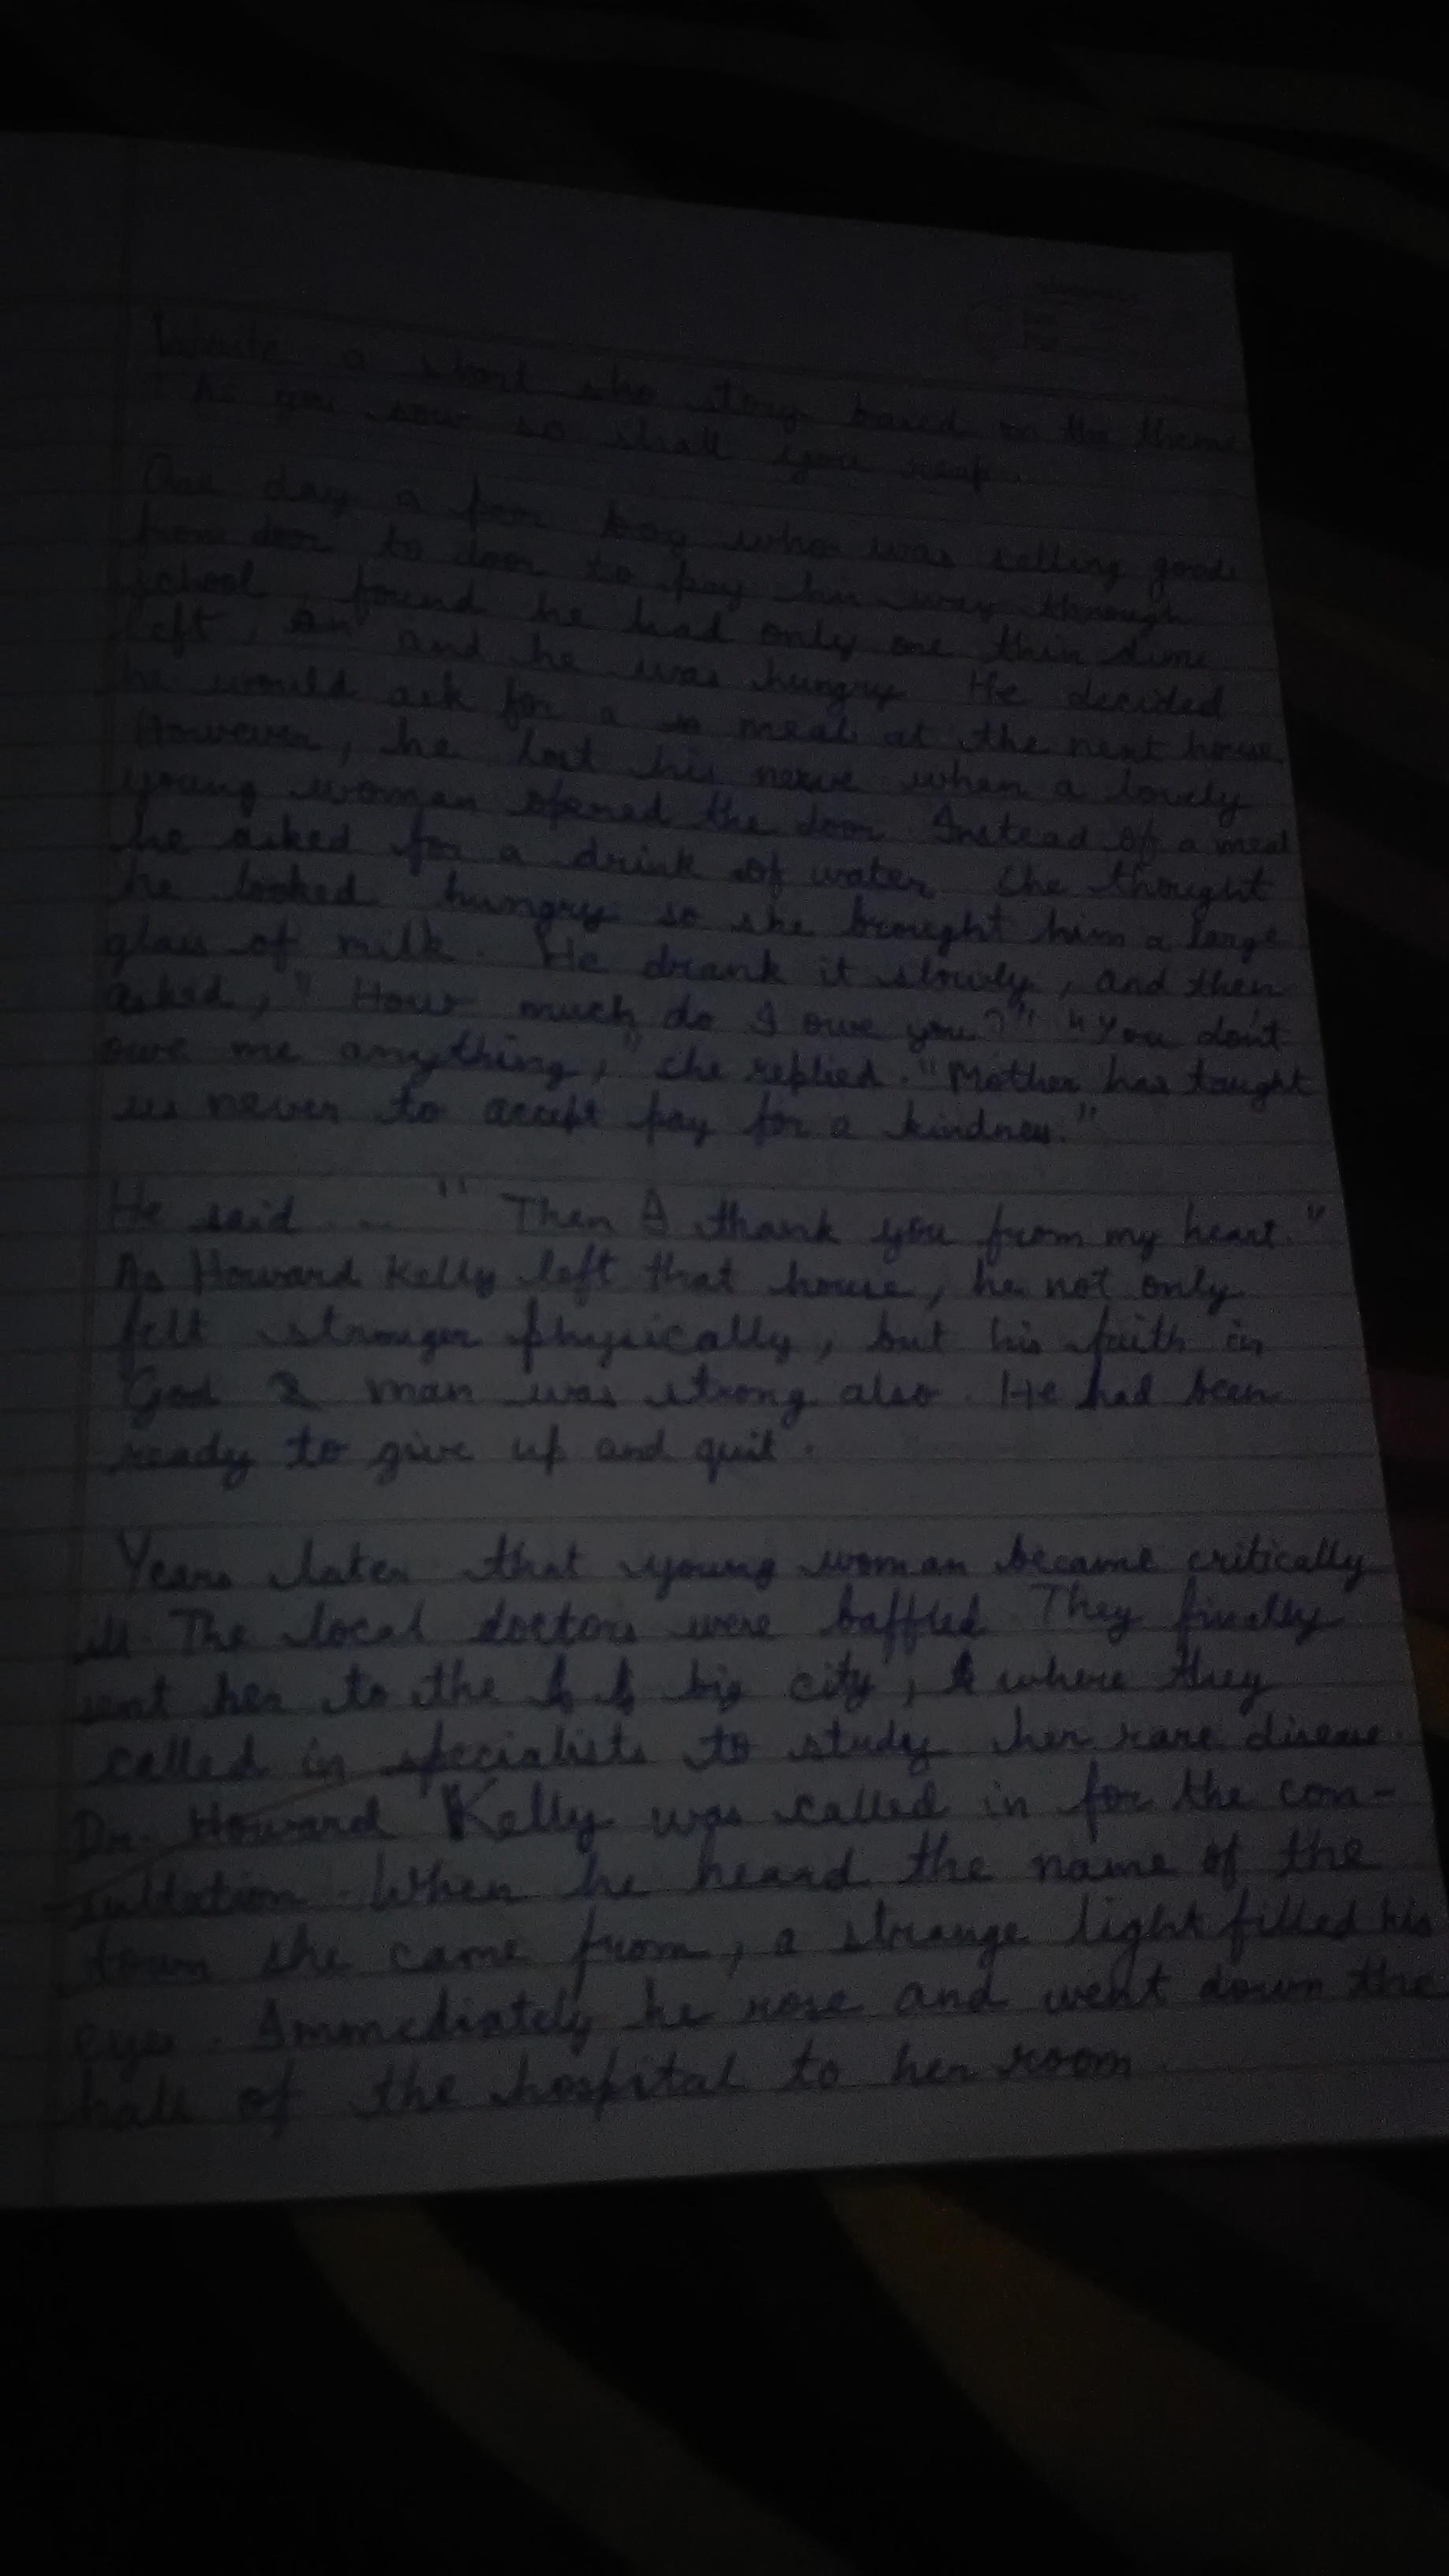 Essay on topic as you sow so shall you reap - Brainly.in